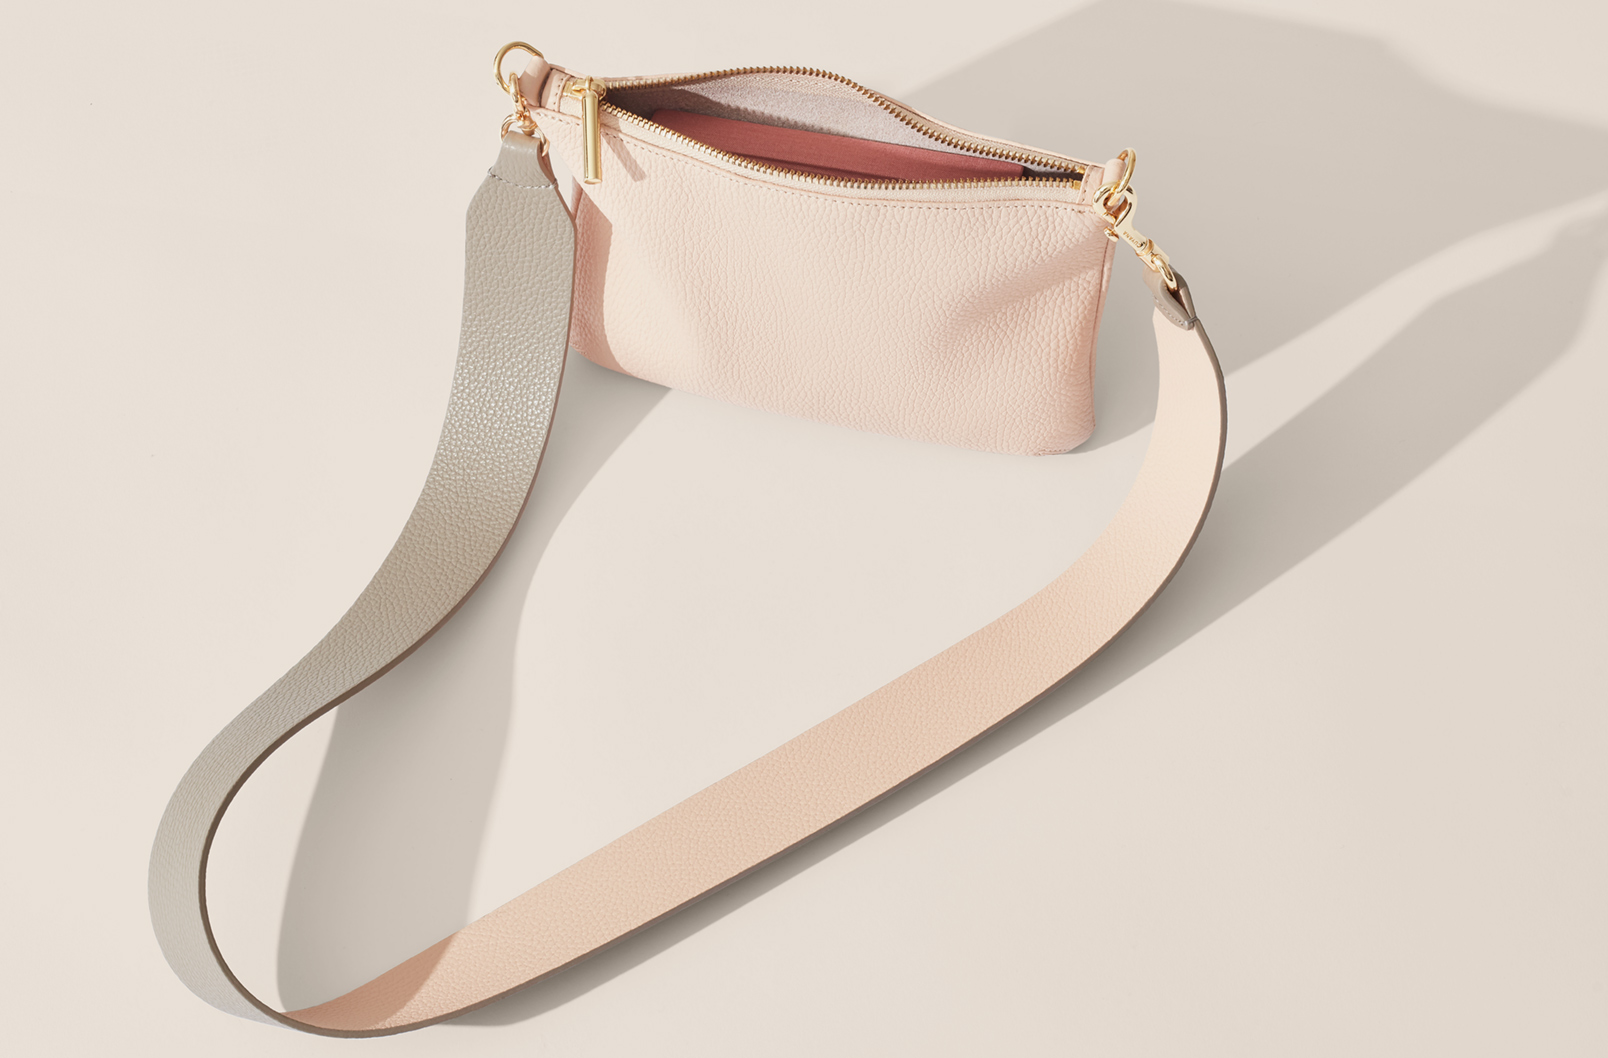 Cuyana Curved Crossbody with Wide Strap